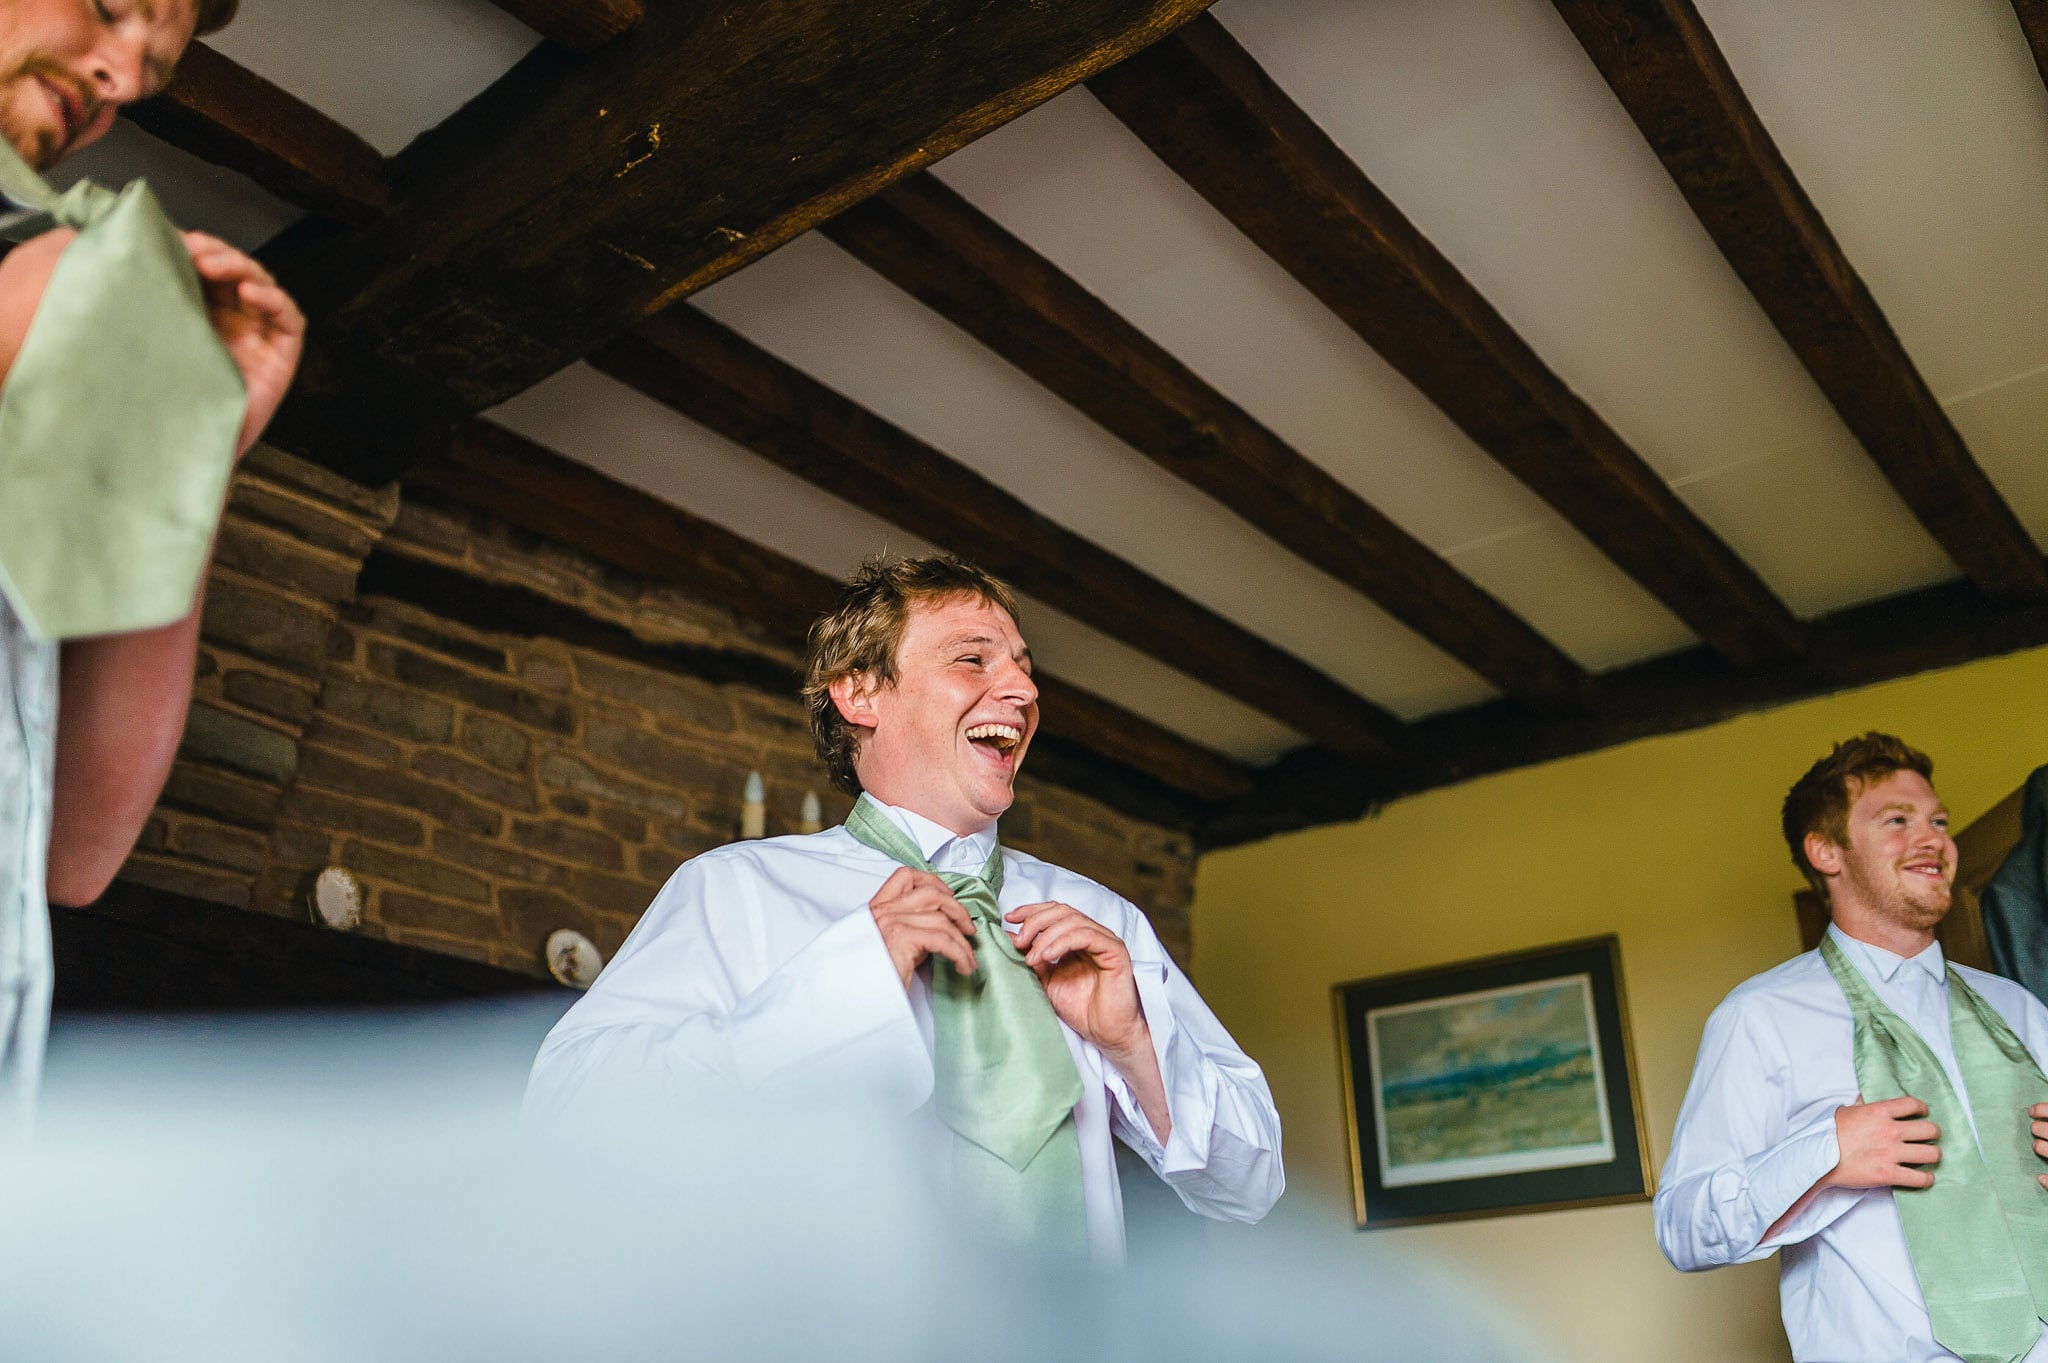 wedding-photographer-west-midlands (34)